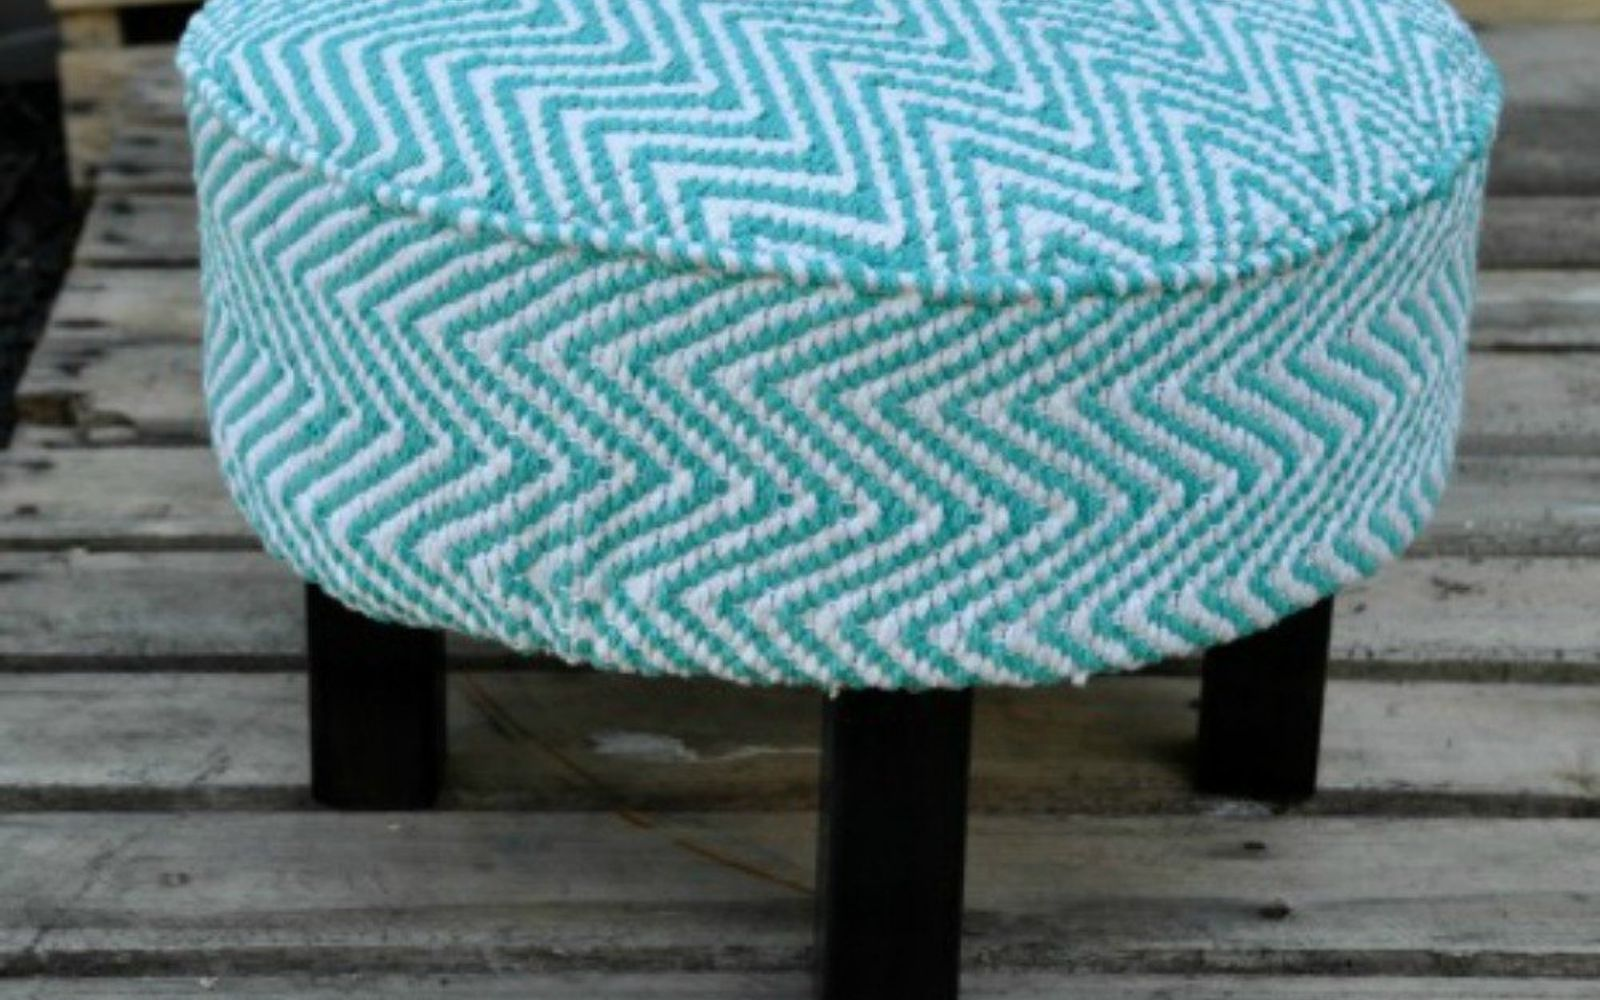 s 12 gorgeous ottoman ideas that will make you want to put your feet up, painted furniture, Build an ottoman from scratch with wood